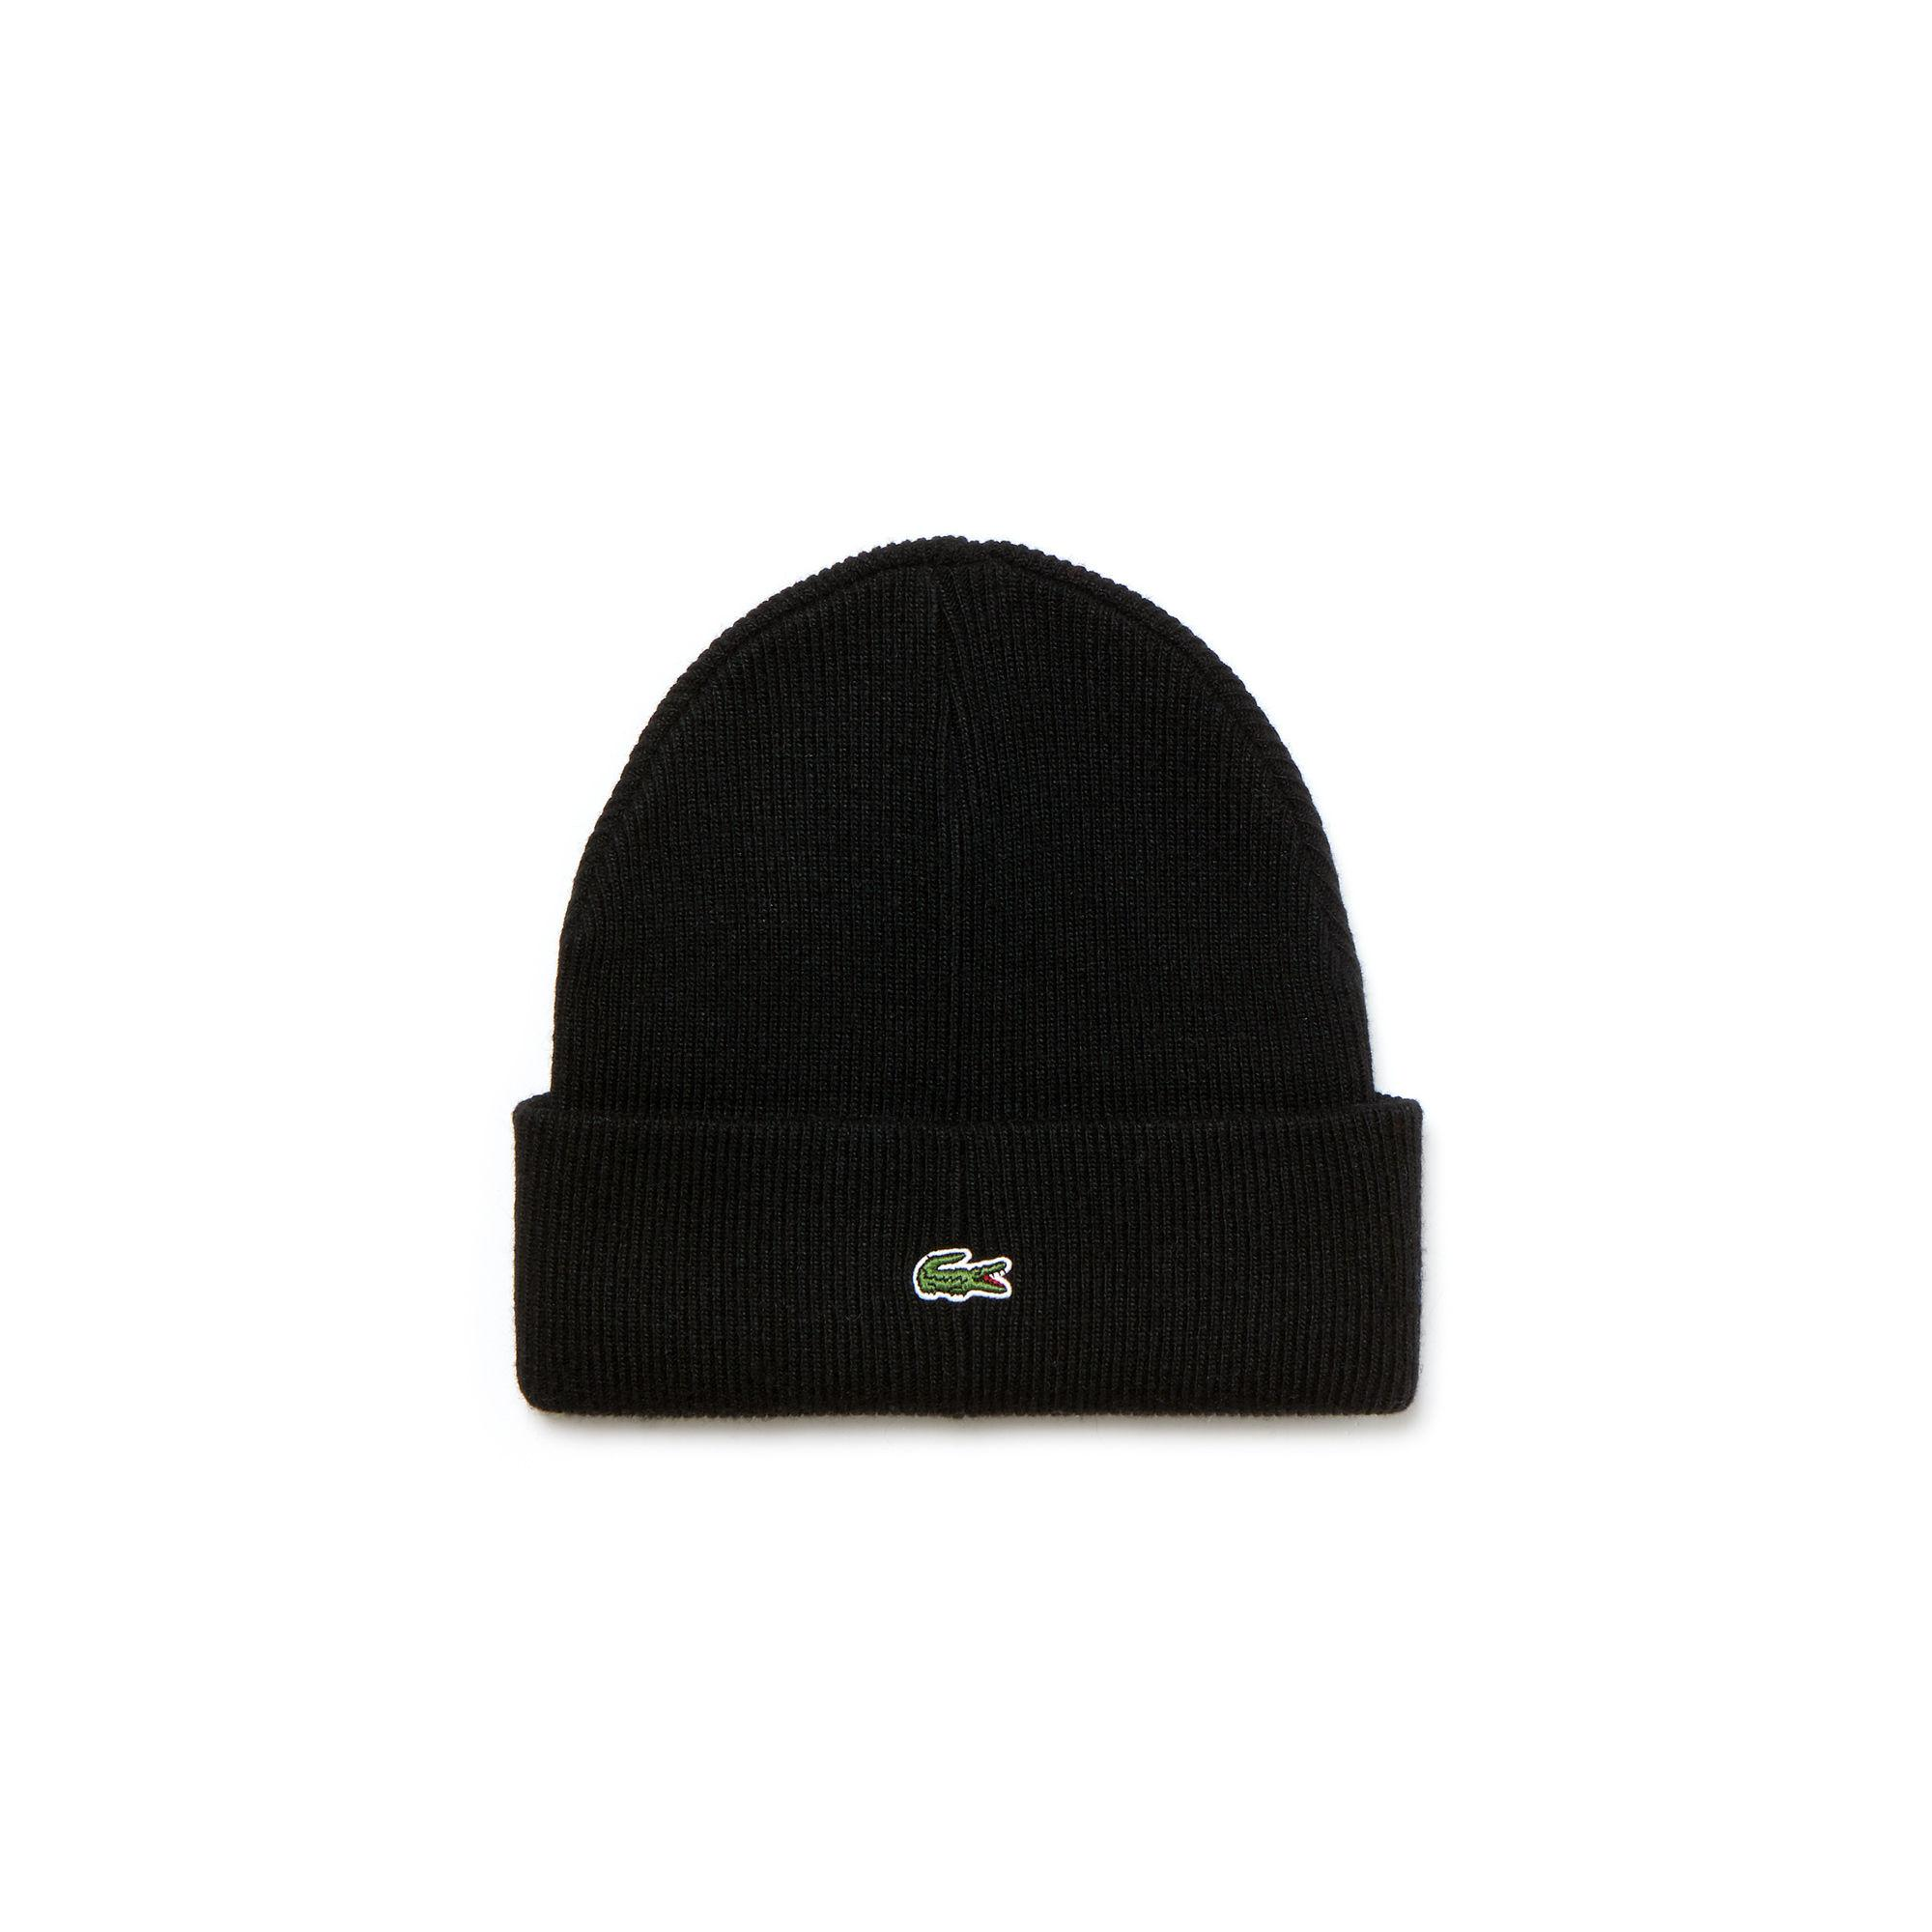 96cf0354b4507 Lyst - Lacoste Unisex Live Turned Edge Ribbed Wool Beanie in Black ...